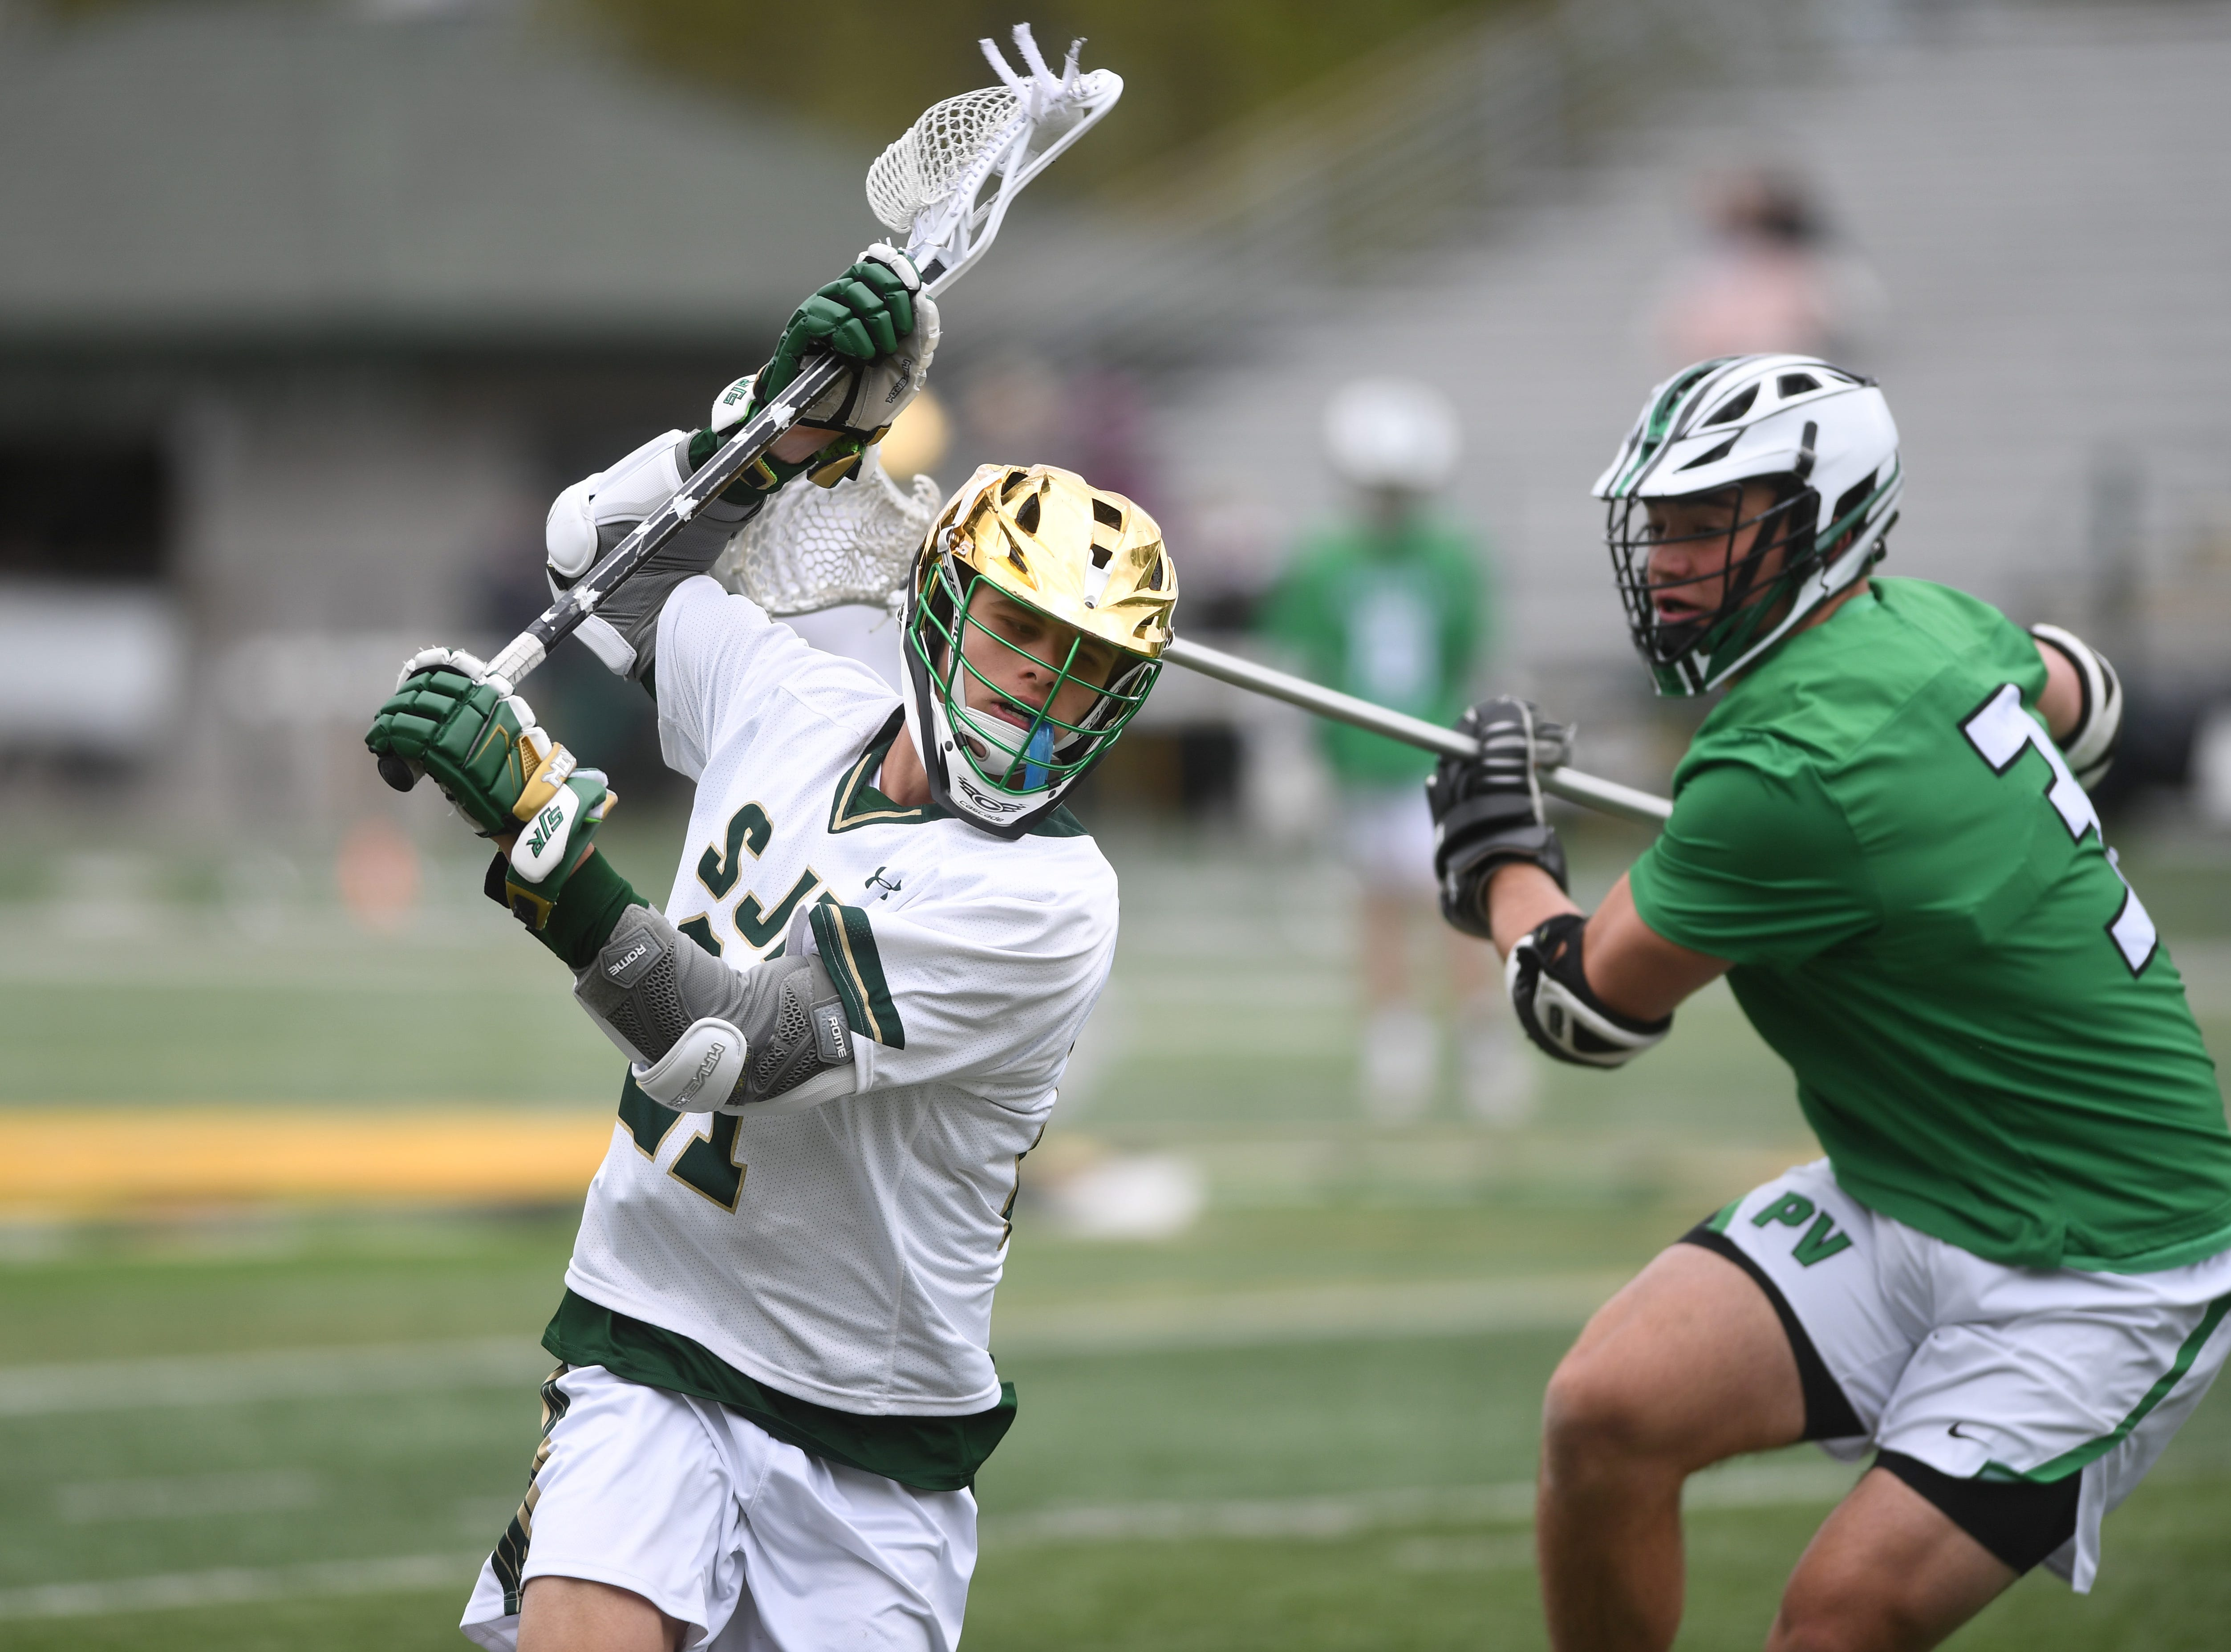 Pascack Valley lacrosse at St. Joseph on Saturday, April 27, 2019. SJ #21 Dom Delponte tries to get past PV #3 Charlie Looes.